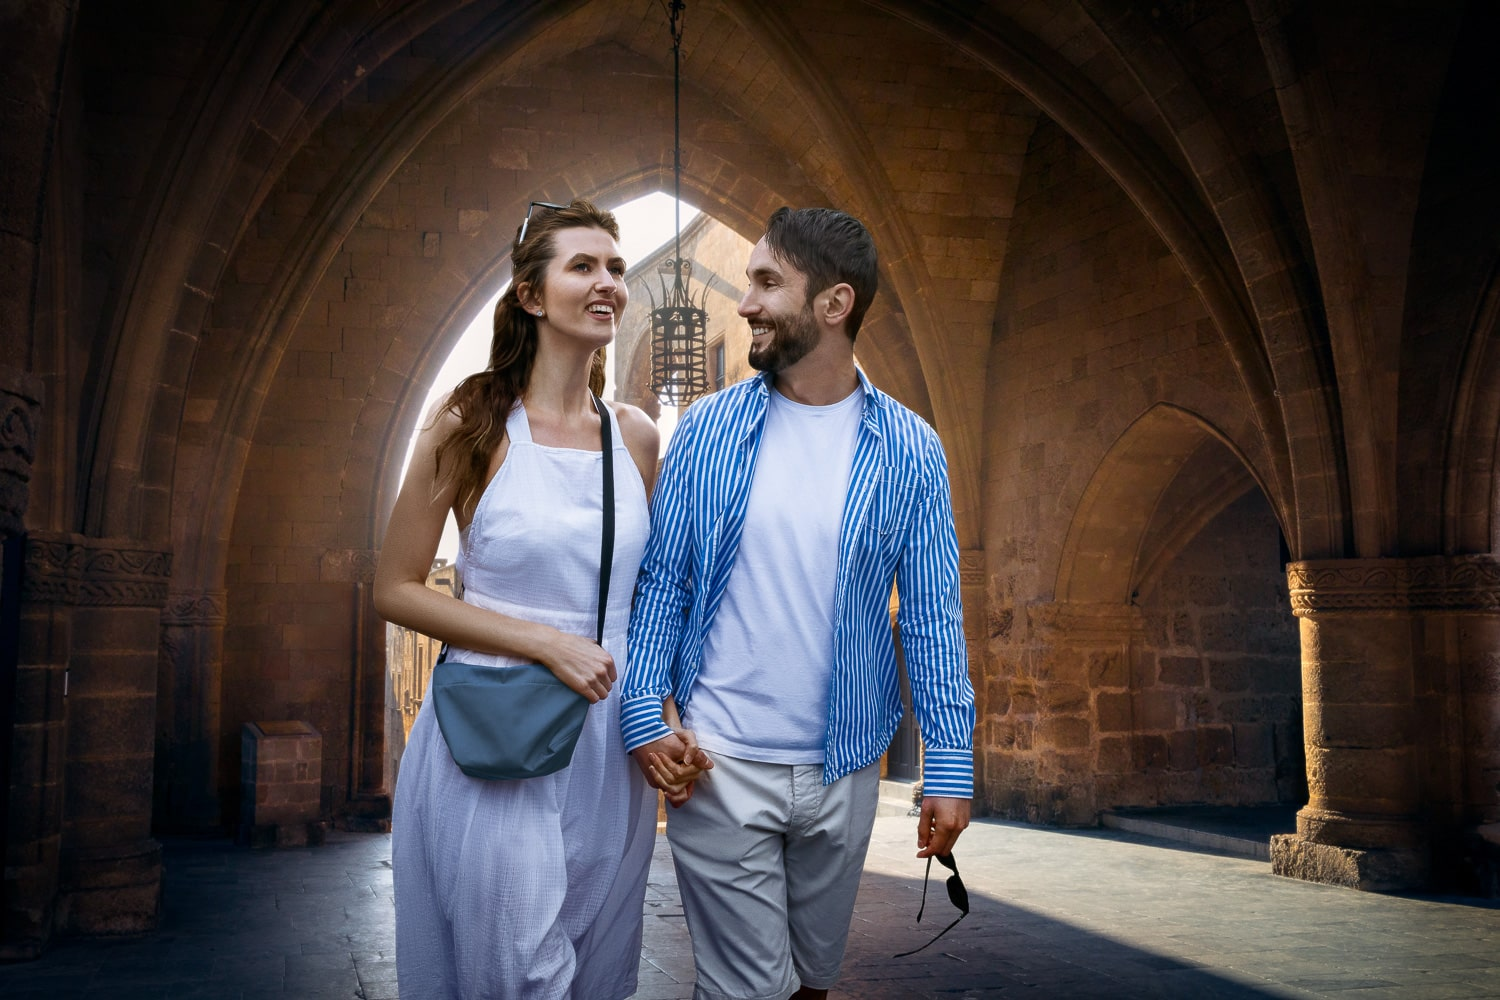 Commercial-lifestyle-photo-arches-of-palace-rhodes